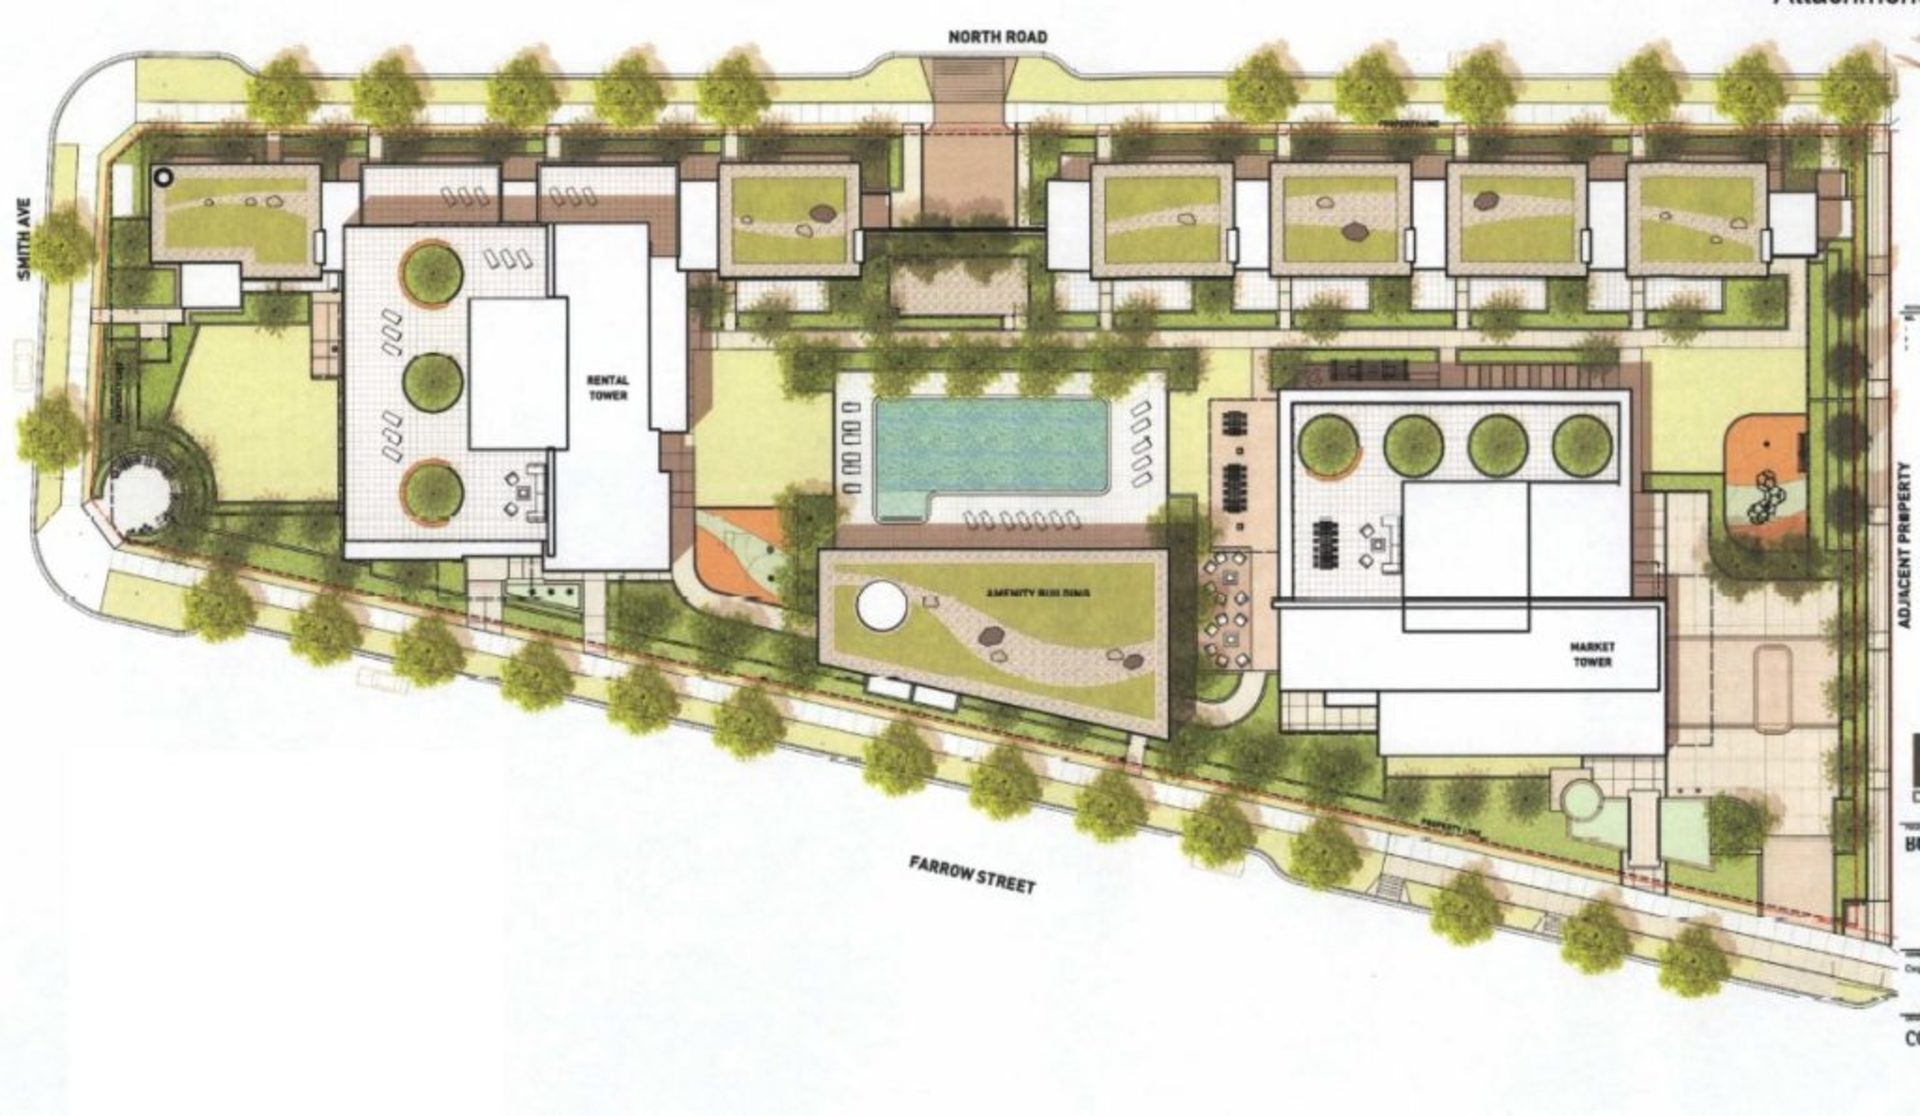 707-north-road_site plan at Smith and Farrow (705-707 North Road, Coquitlam West, Coquitlam)